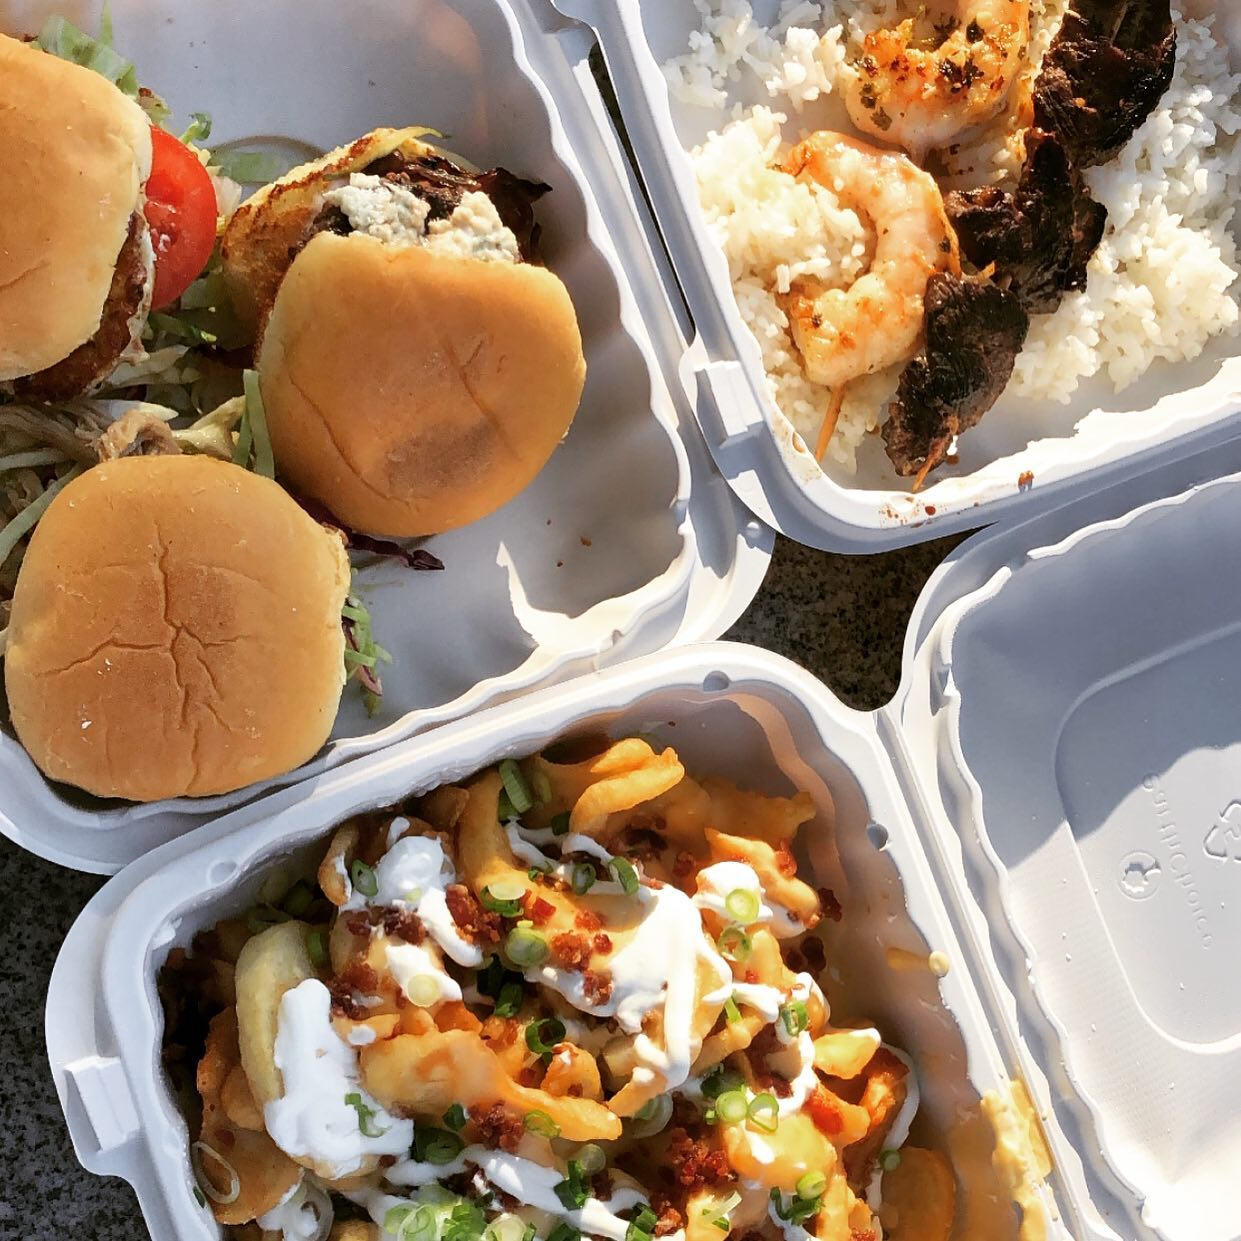 assortment of to-go containers filled with food